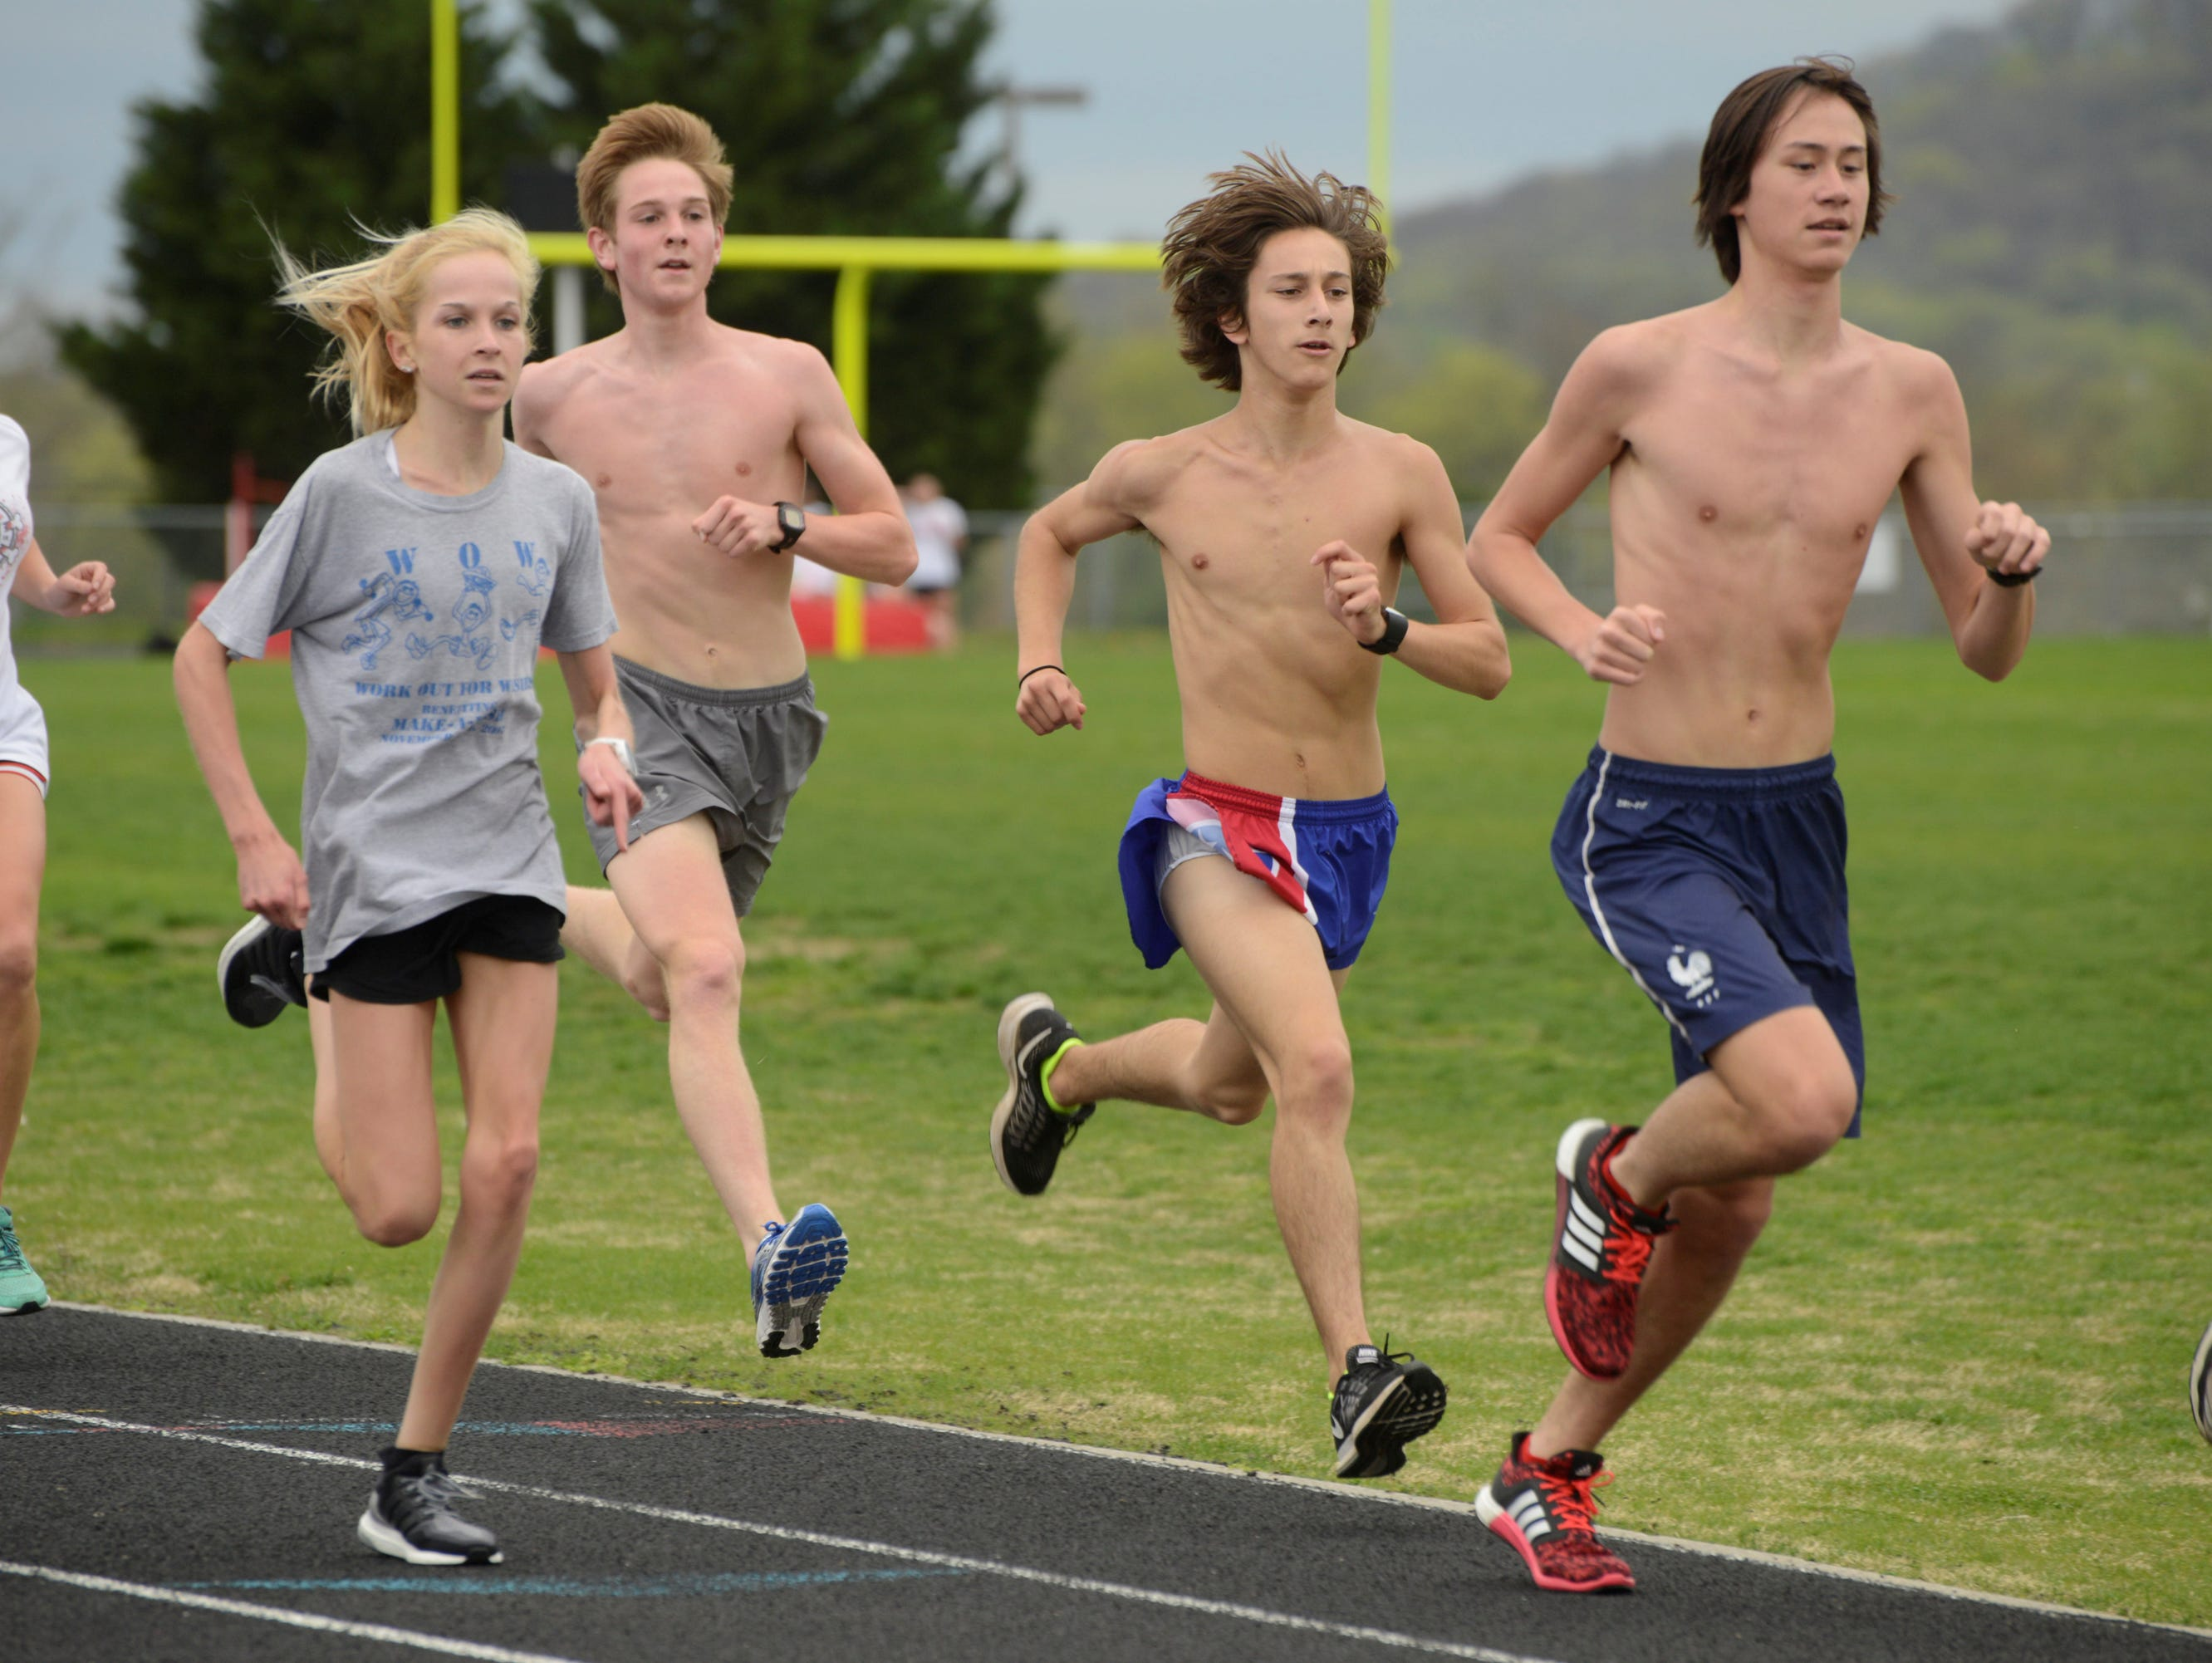 Diego Zuazua (In blue and red shorts) joins track practice on Thurday, March 30, 2016 at Ravenwood High School. Zuazua is a freshmandistance runner who set the half-marathon world record for a 14-year-old earlier this year with a finish at the Cedars of Lebanon race. Originally from Peru, Zuazua identifies as Mexican and is working toward his United States citizenship.